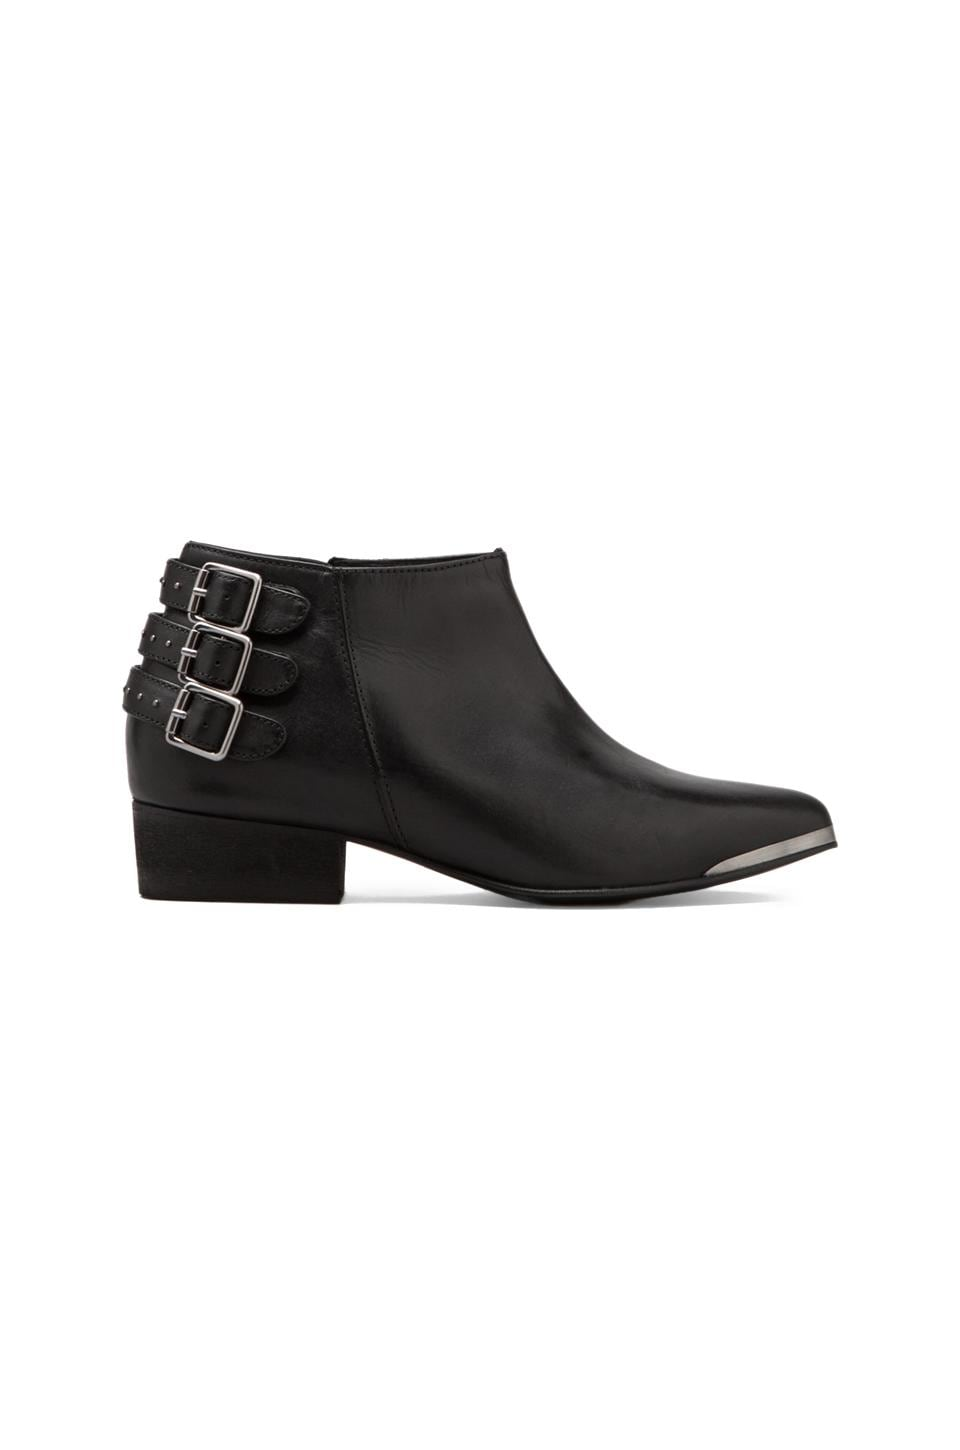 Seychelles It's About Time Bootie in Black